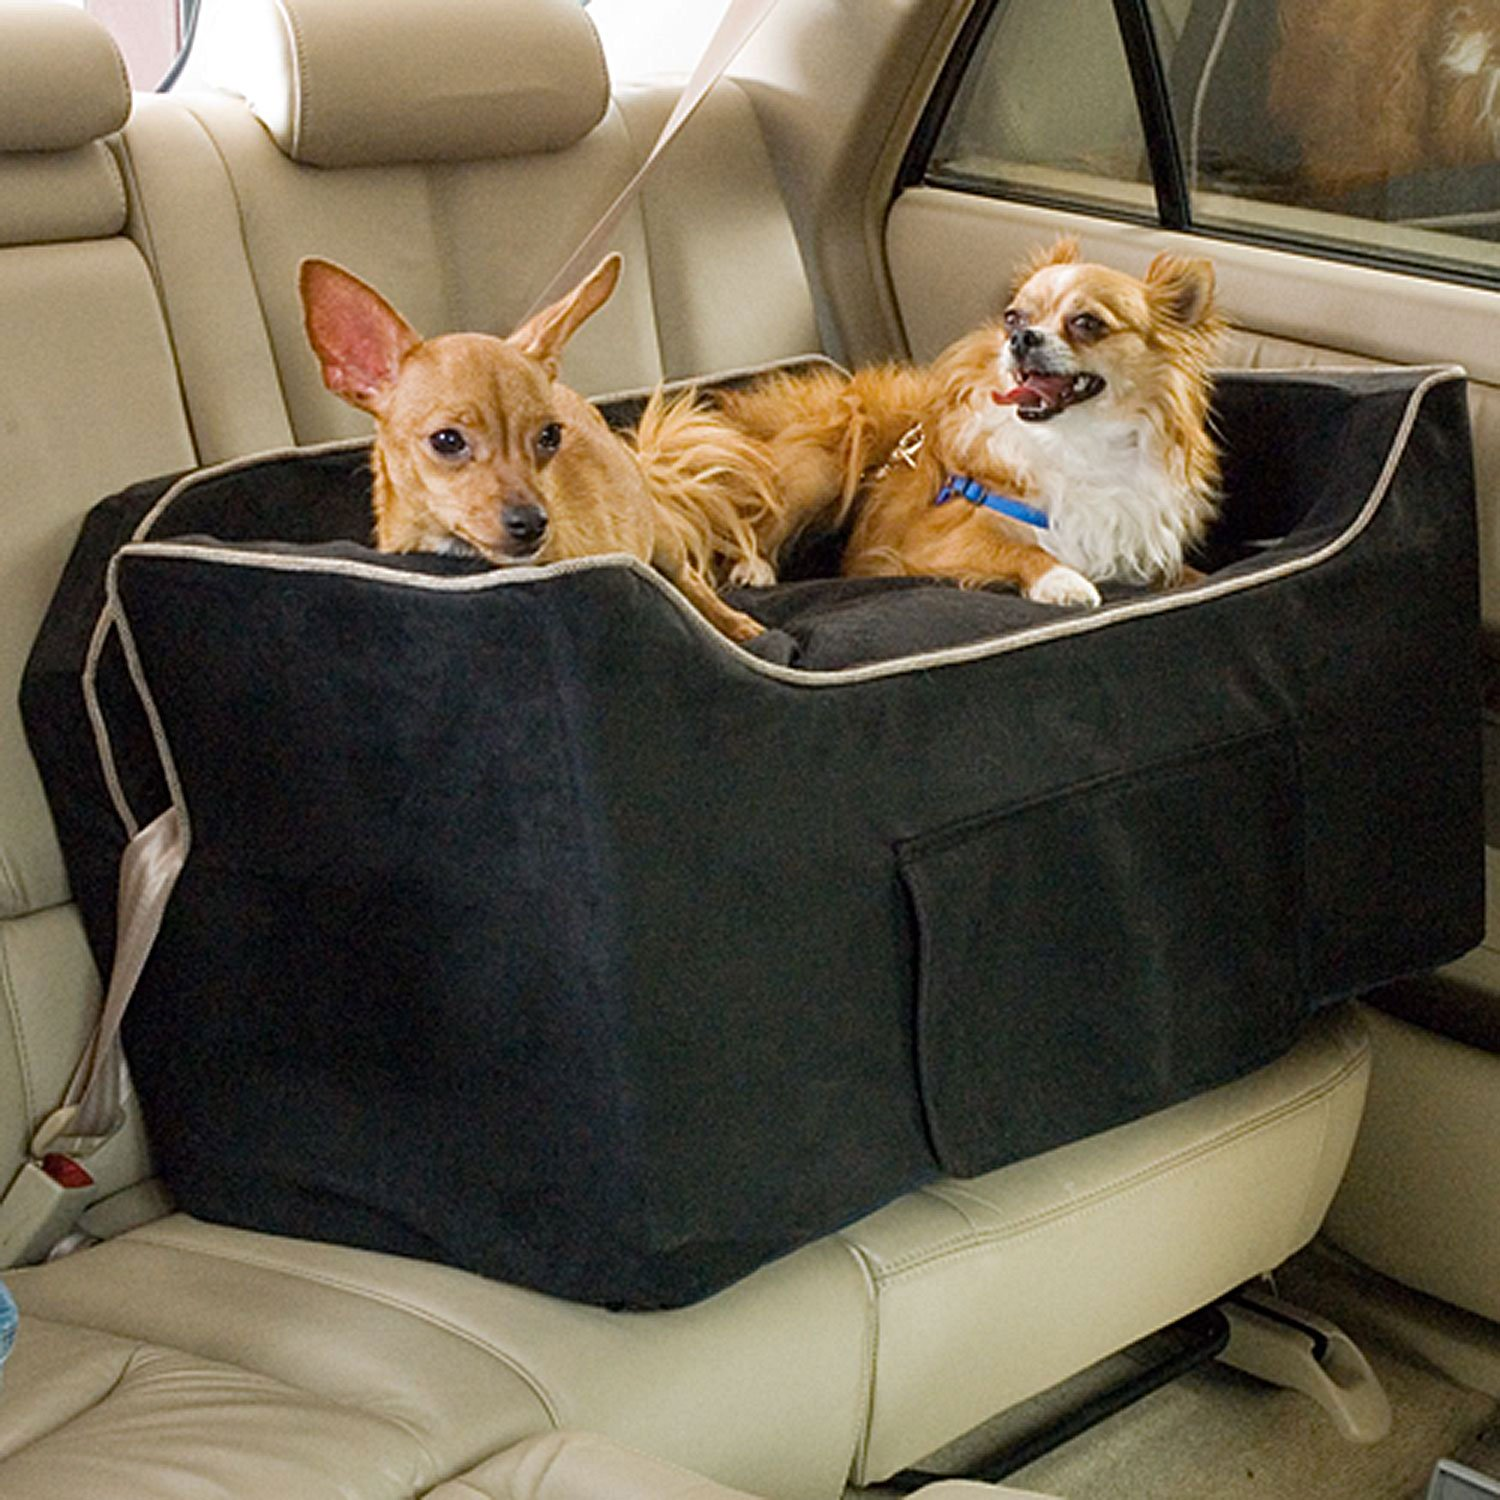 Sale Dog Booster Seat